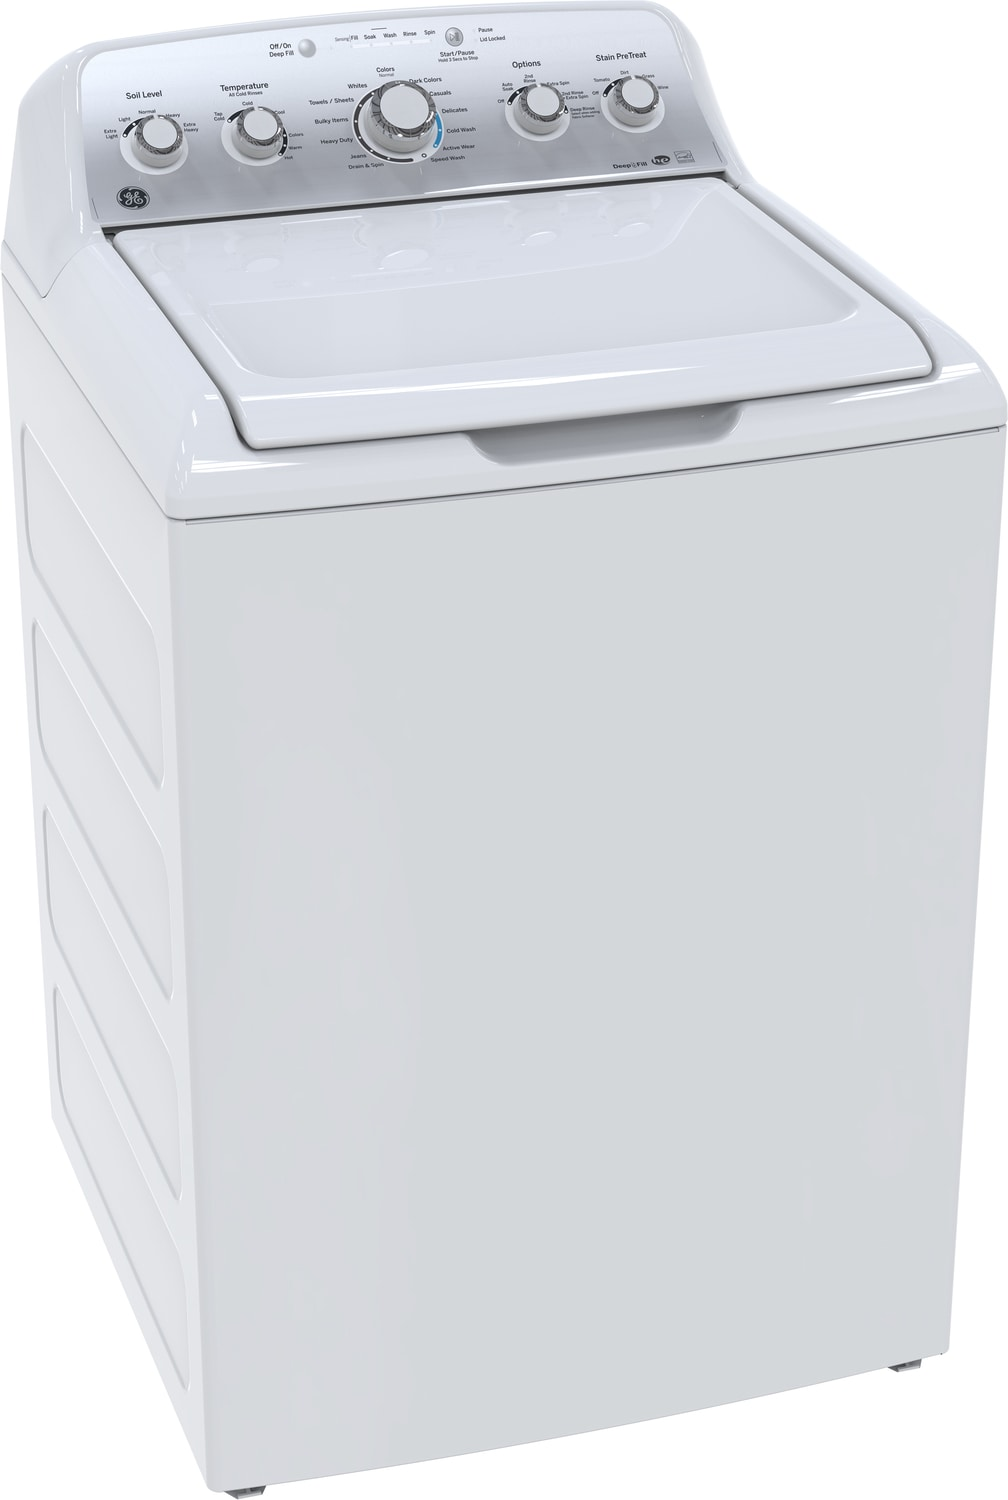 GE White Top-Load Washer (4.9 Cu. Ft. IEC) - GTW485BMKWS